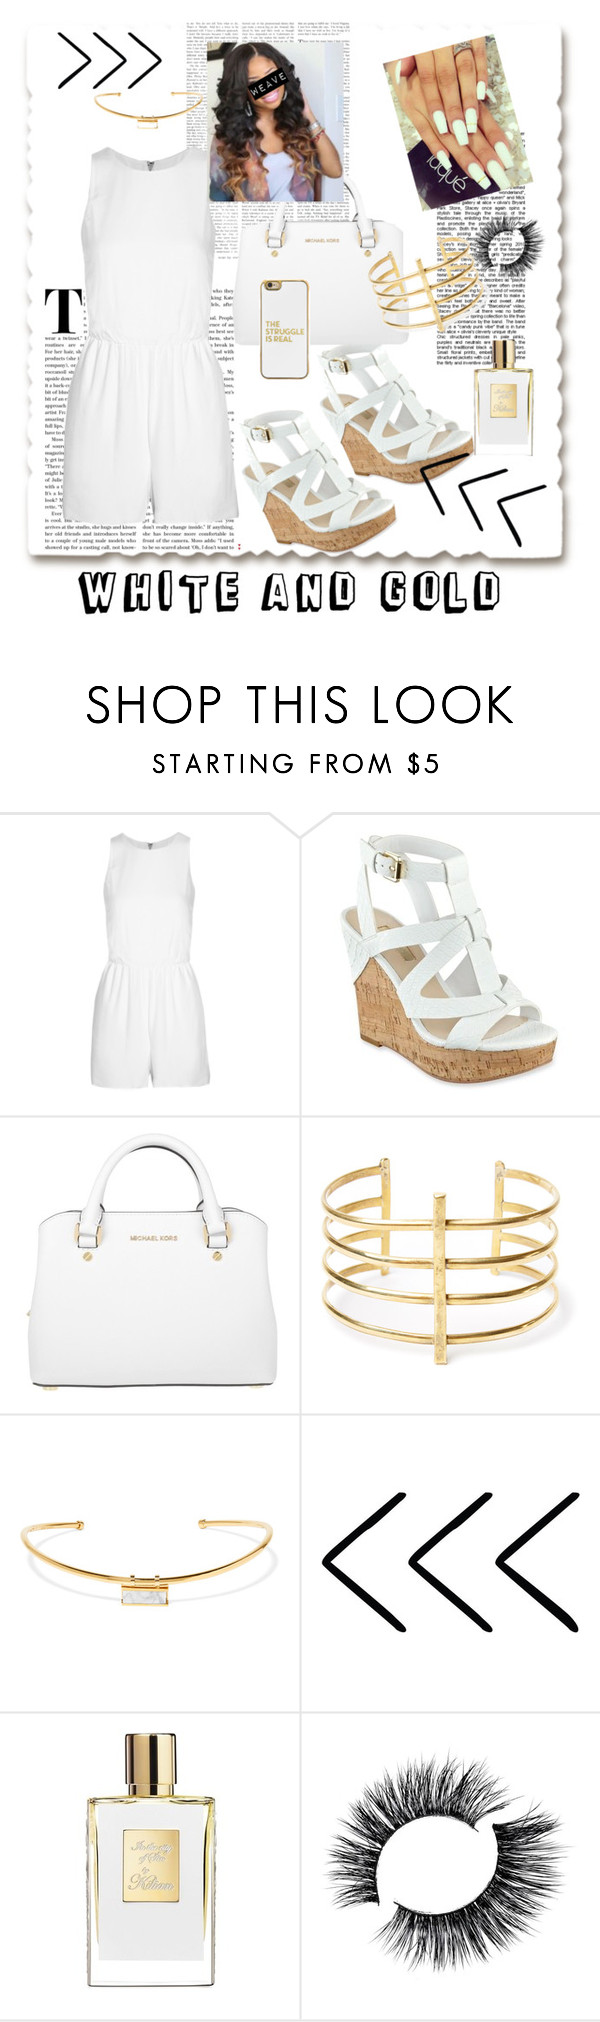 """All White Look"" by oyeket36 ❤ liked on Polyvore featuring Alice + Olivia, Michael Kors, BauXo, Isabel Marant and BaubleBar"